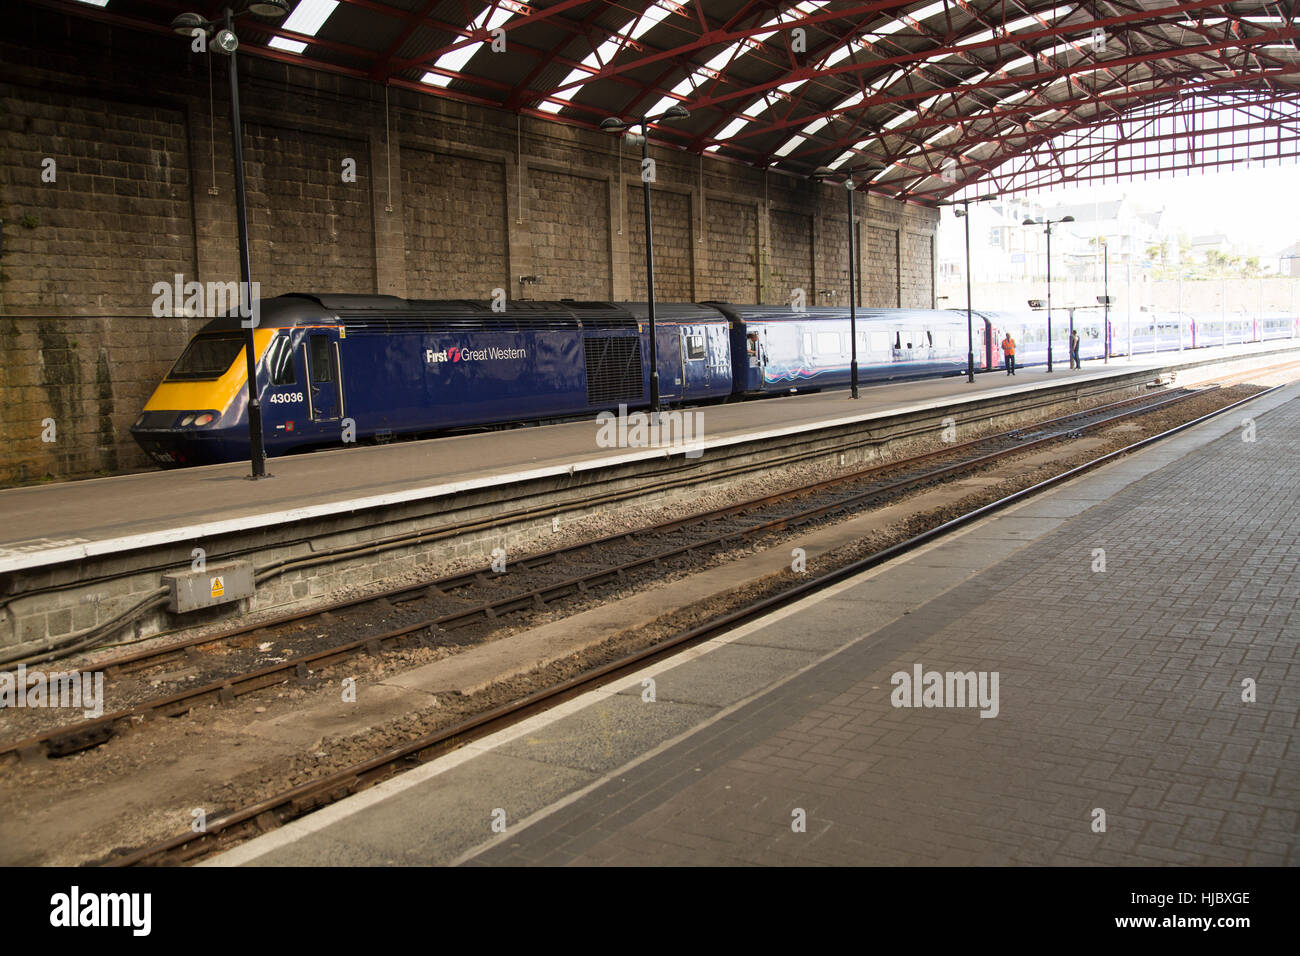 Penzance rail stock photos penzance rail stock images alamy Taunton swimming pool station road